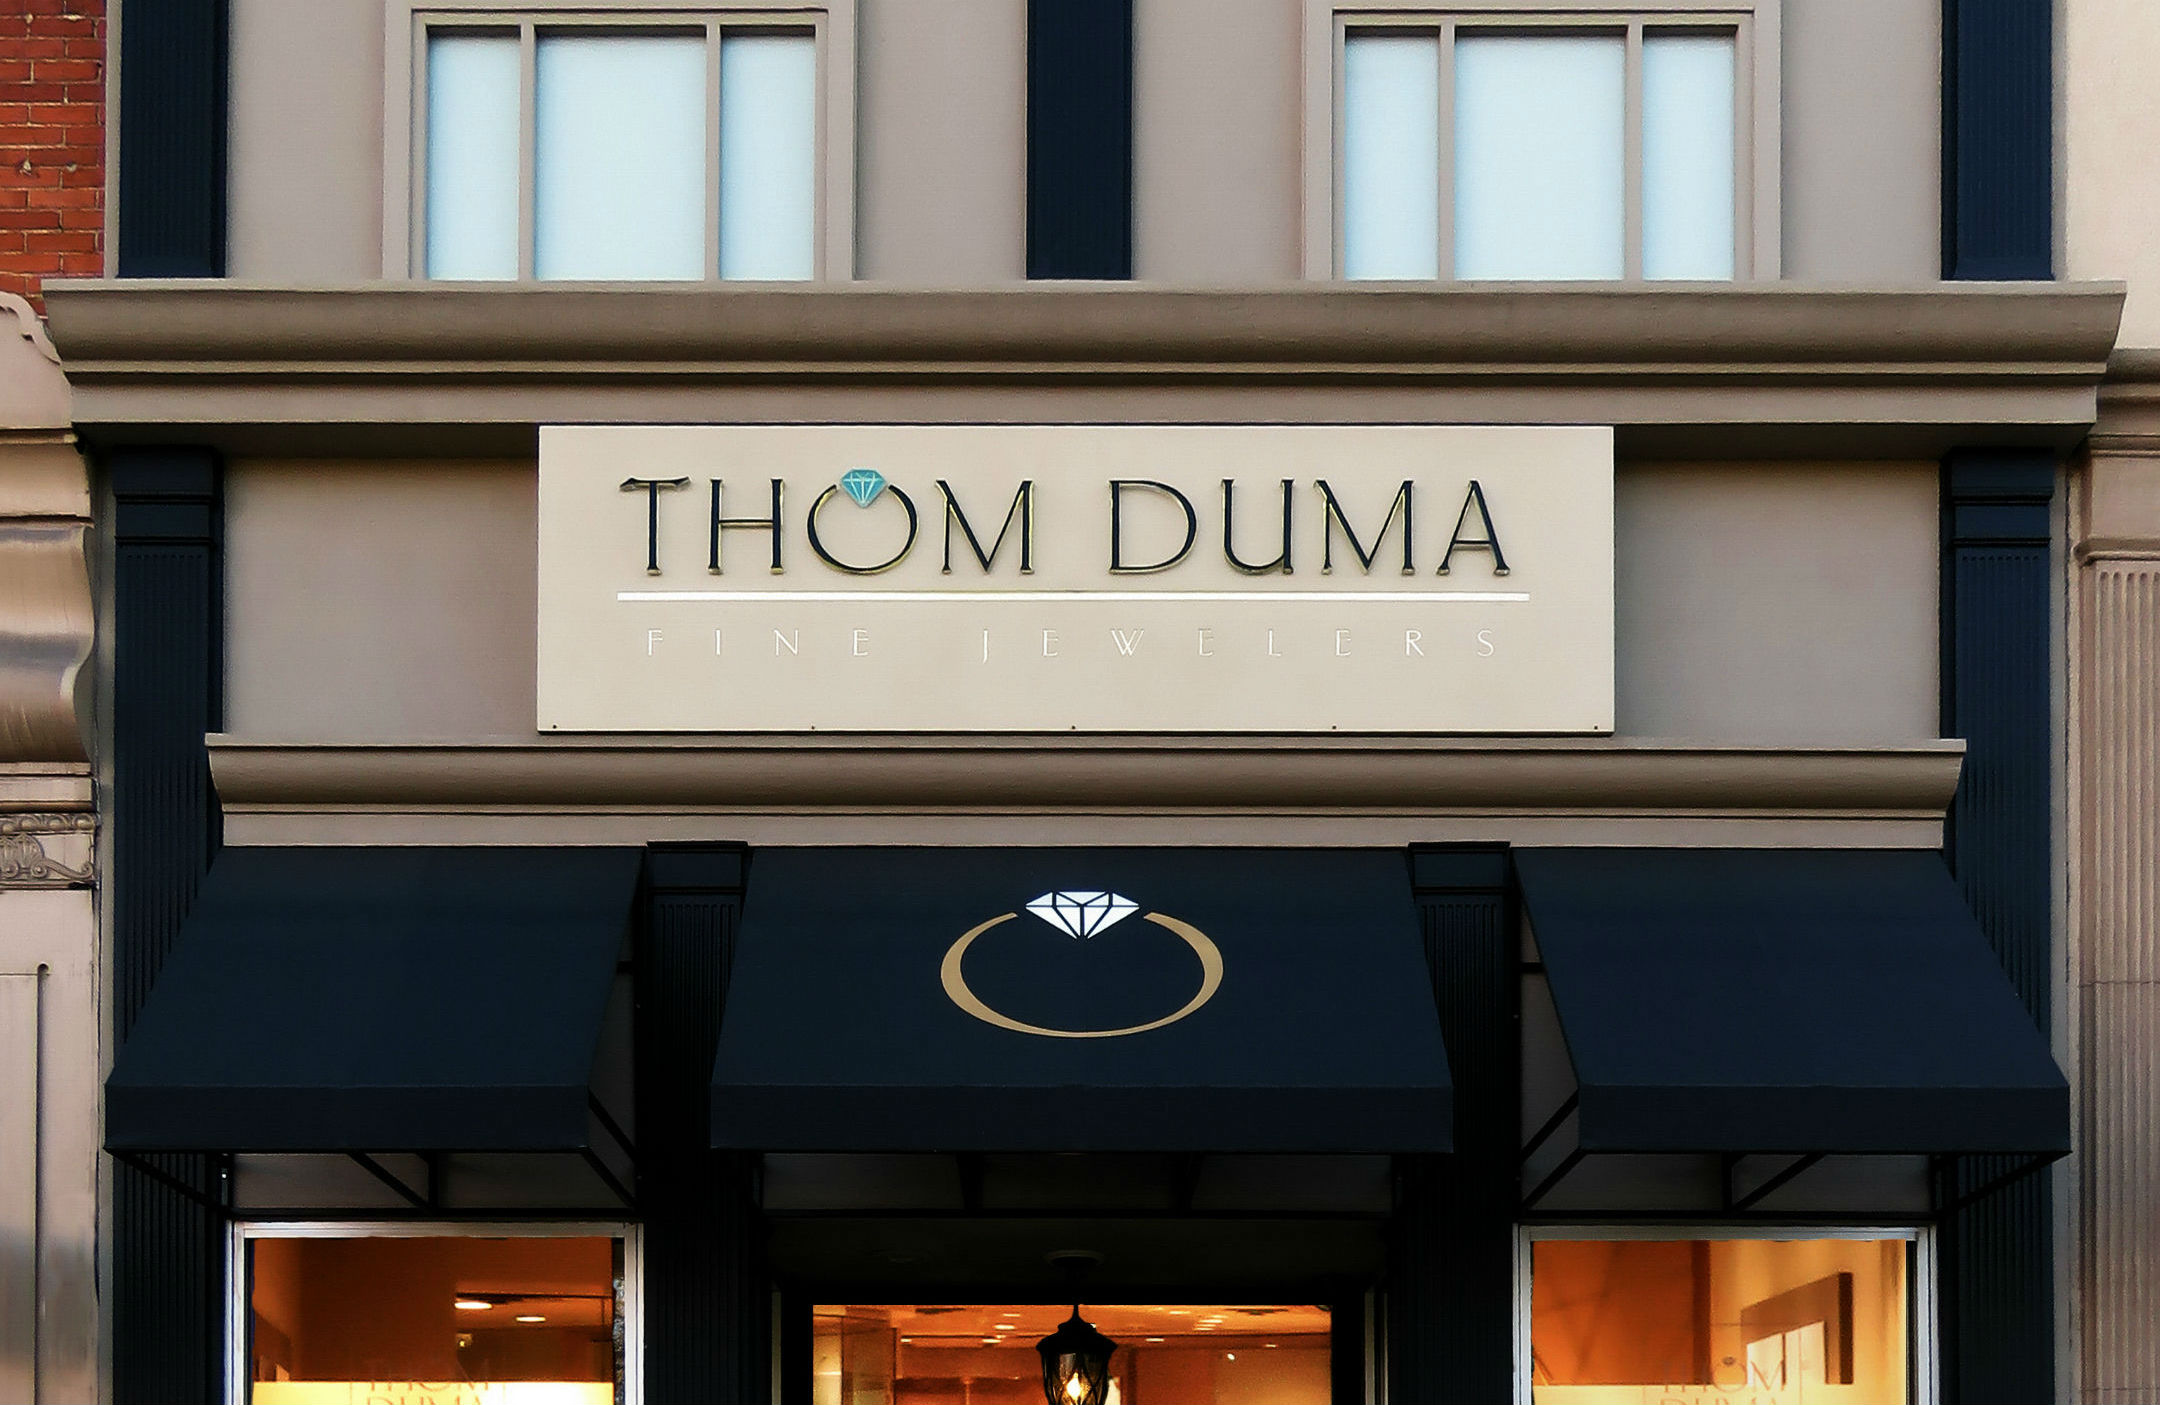 Thom Duma Fine Jewelers Featured in Distinctive Living in the Valley Magazine